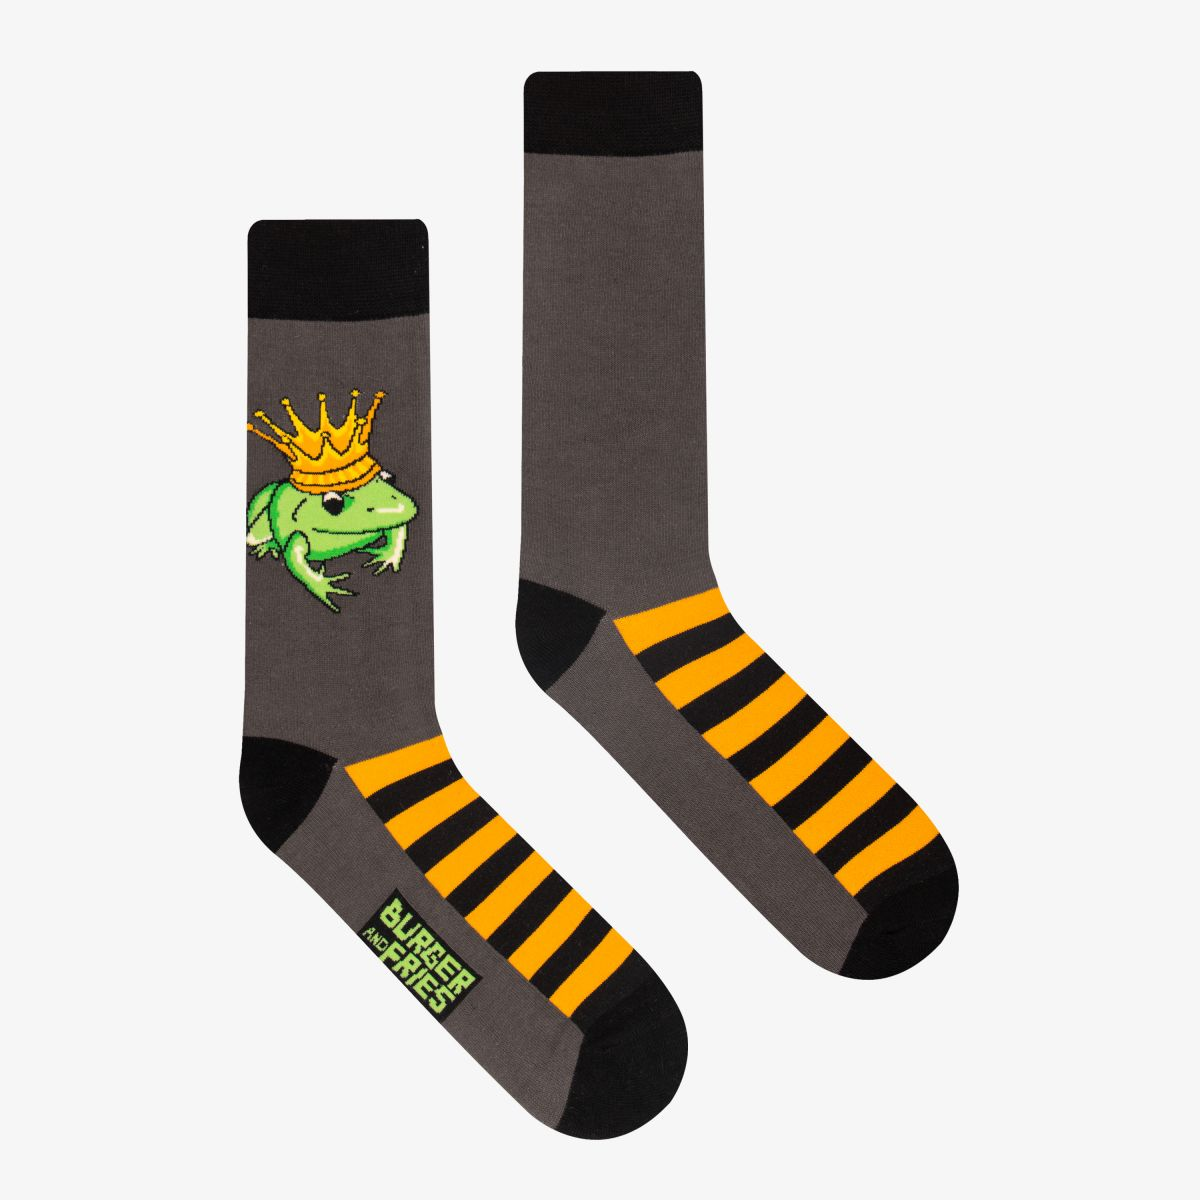 TALES SOCKS WHO IS THE KING ?